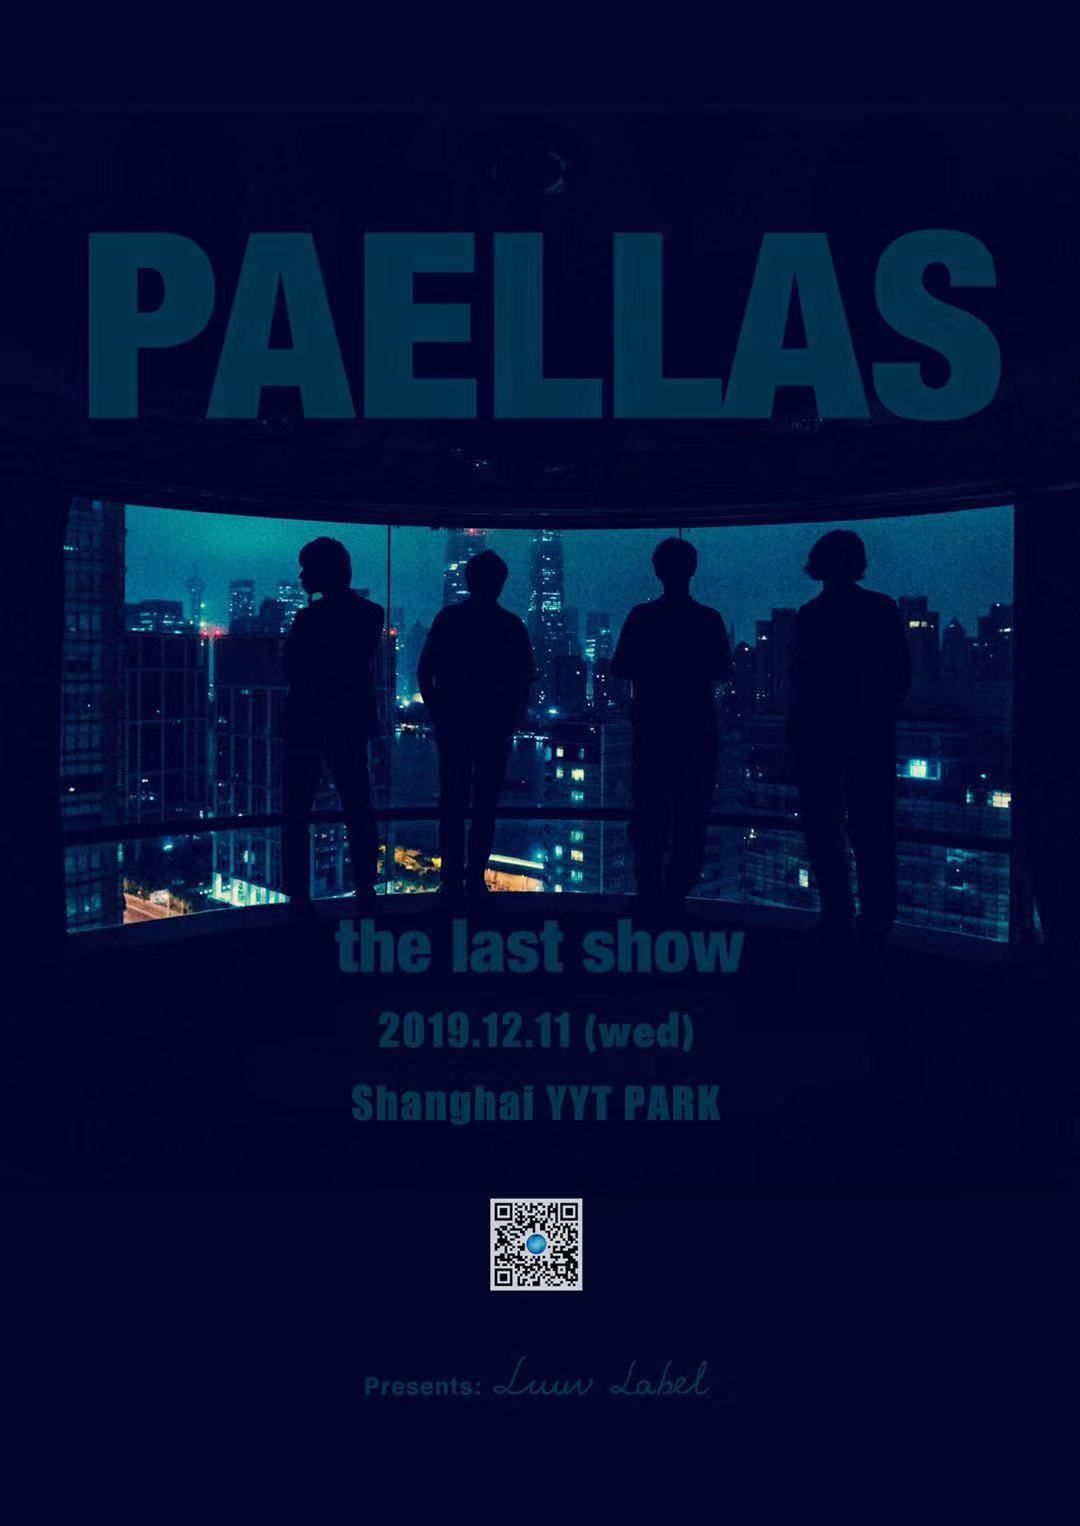 PAELLAS the Last Show in Shanghai